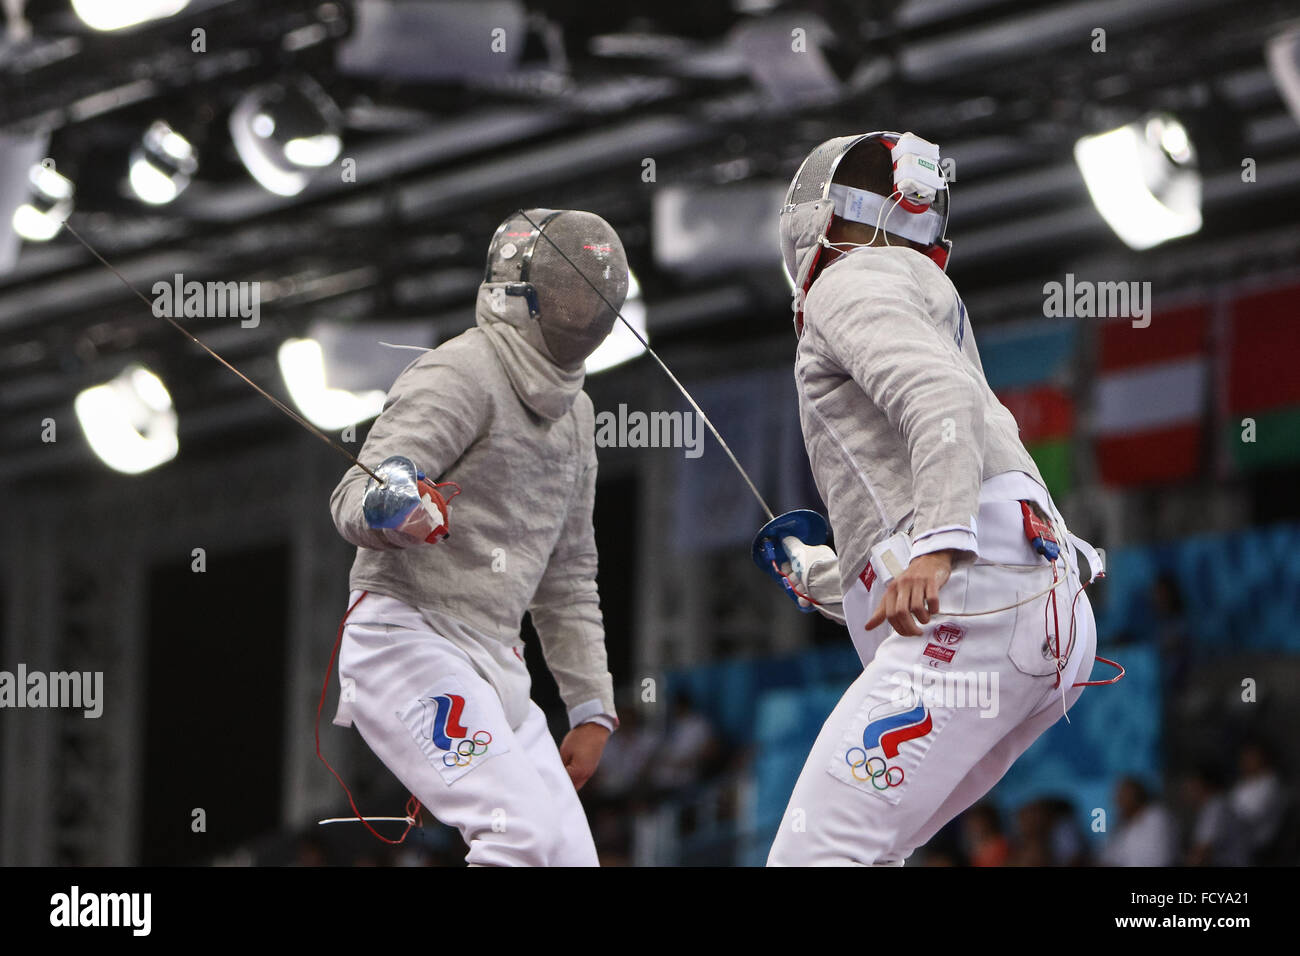 Alexander Trushakov (RUS) vs Nikita Proskura (RUS). Men's Sabre Individual Table of 32. Fencing. Crystal Hall. - Stock Image